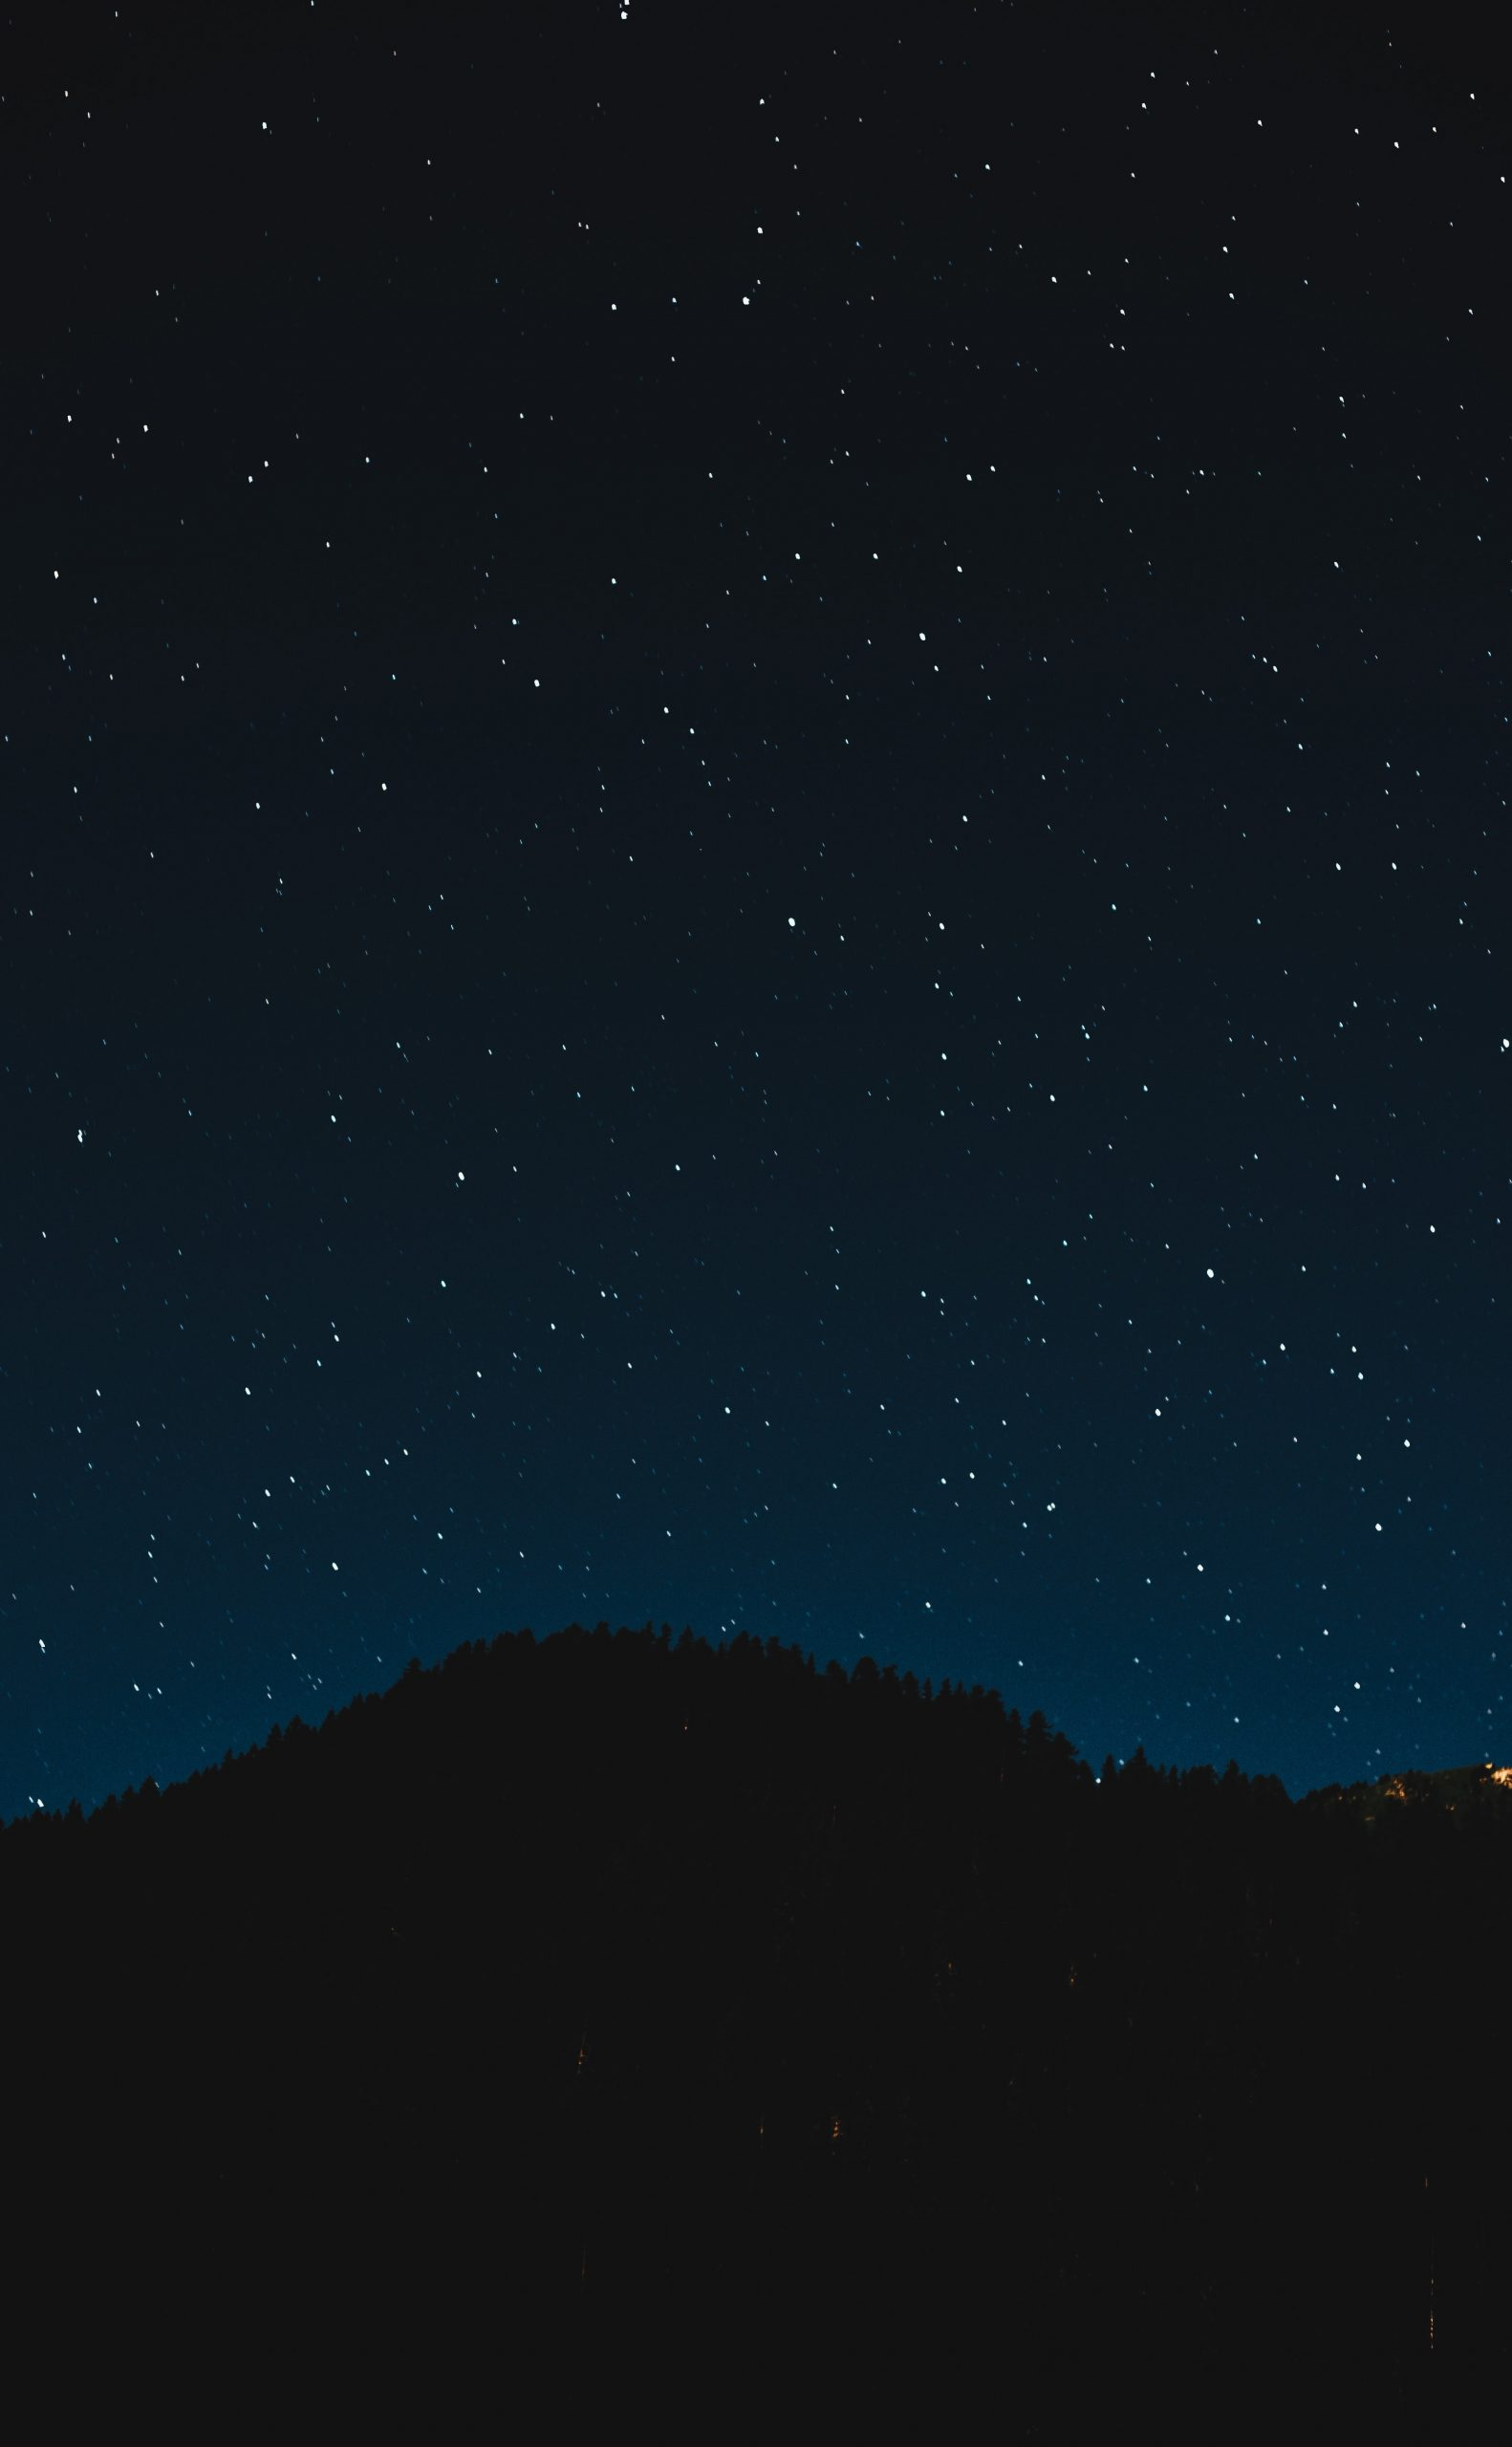 The night sky is seen over a dark patch of forest